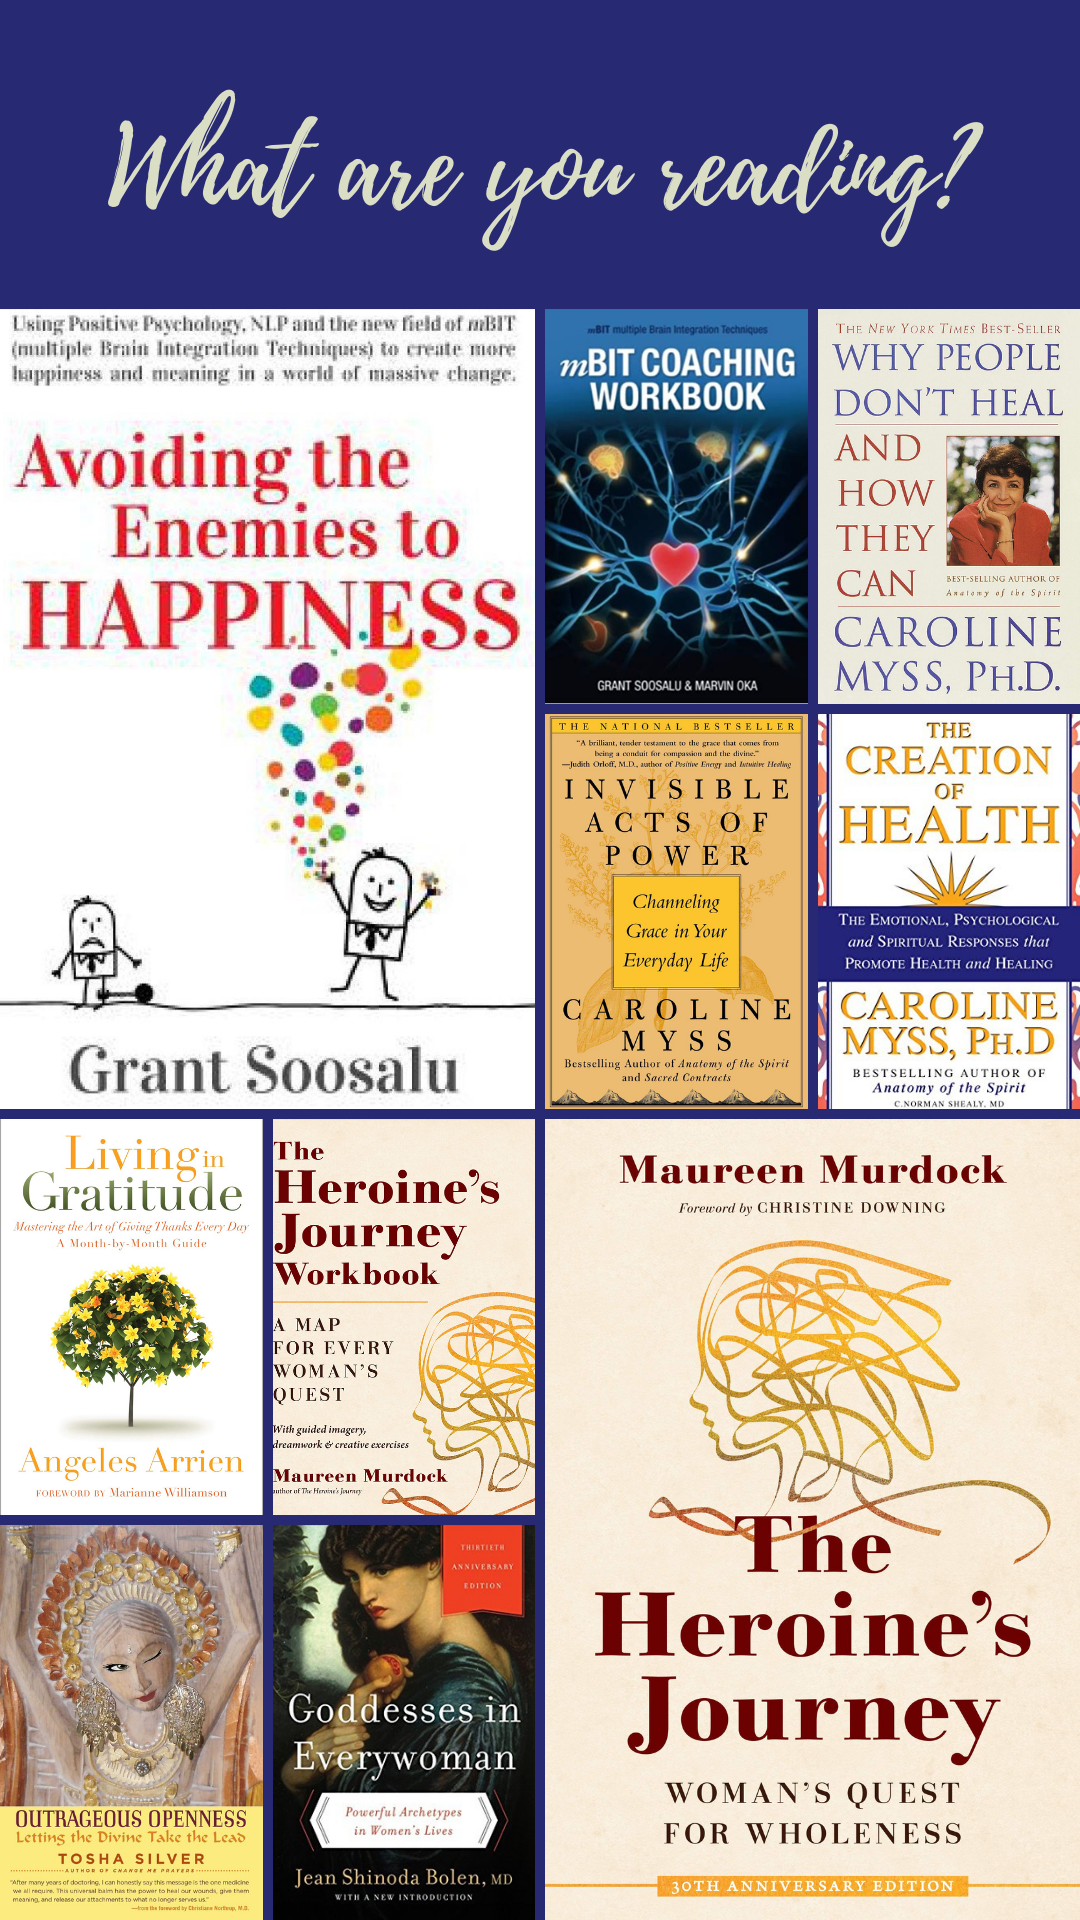 what are you reading, avoiding the enemies to happiness, grant soosalu, mBIT Coaching Workbook, Why people don't heal and how they can, Caroline Myss, Invisible Acts of Power, The Creation of Health, Living in Gratitude, Outrageous Openness, Tosha Silver, Goddesses in Everywoman, Jean Shinoda Bolen, The Heroine's Journey, Maureen Murdock